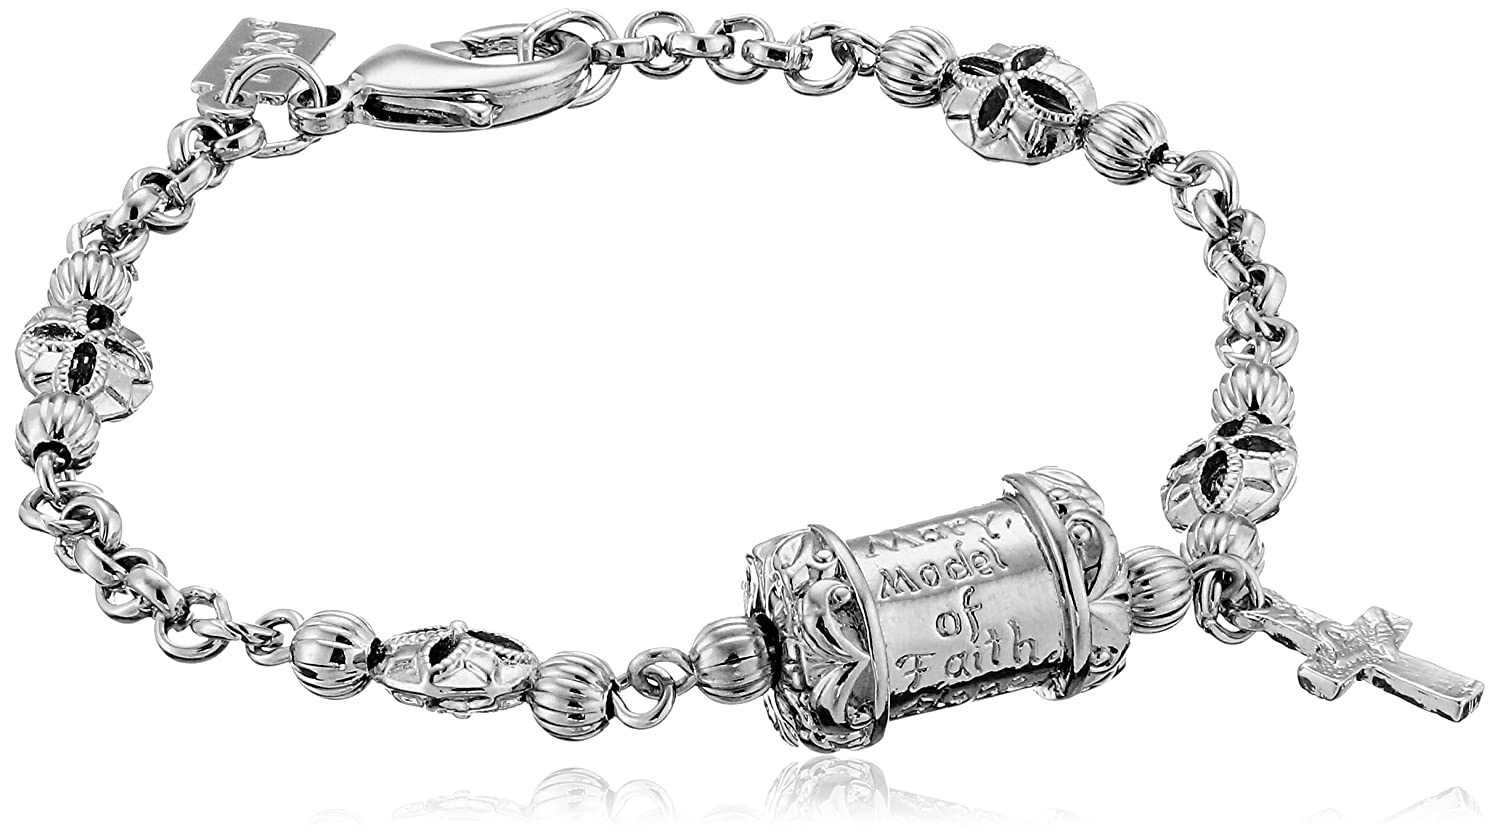 Symbols of faith inspirations silver tone mary pray for us cross symbols of faith inspirations silver tone mary pray for us cross link charm biocorpaavc Images